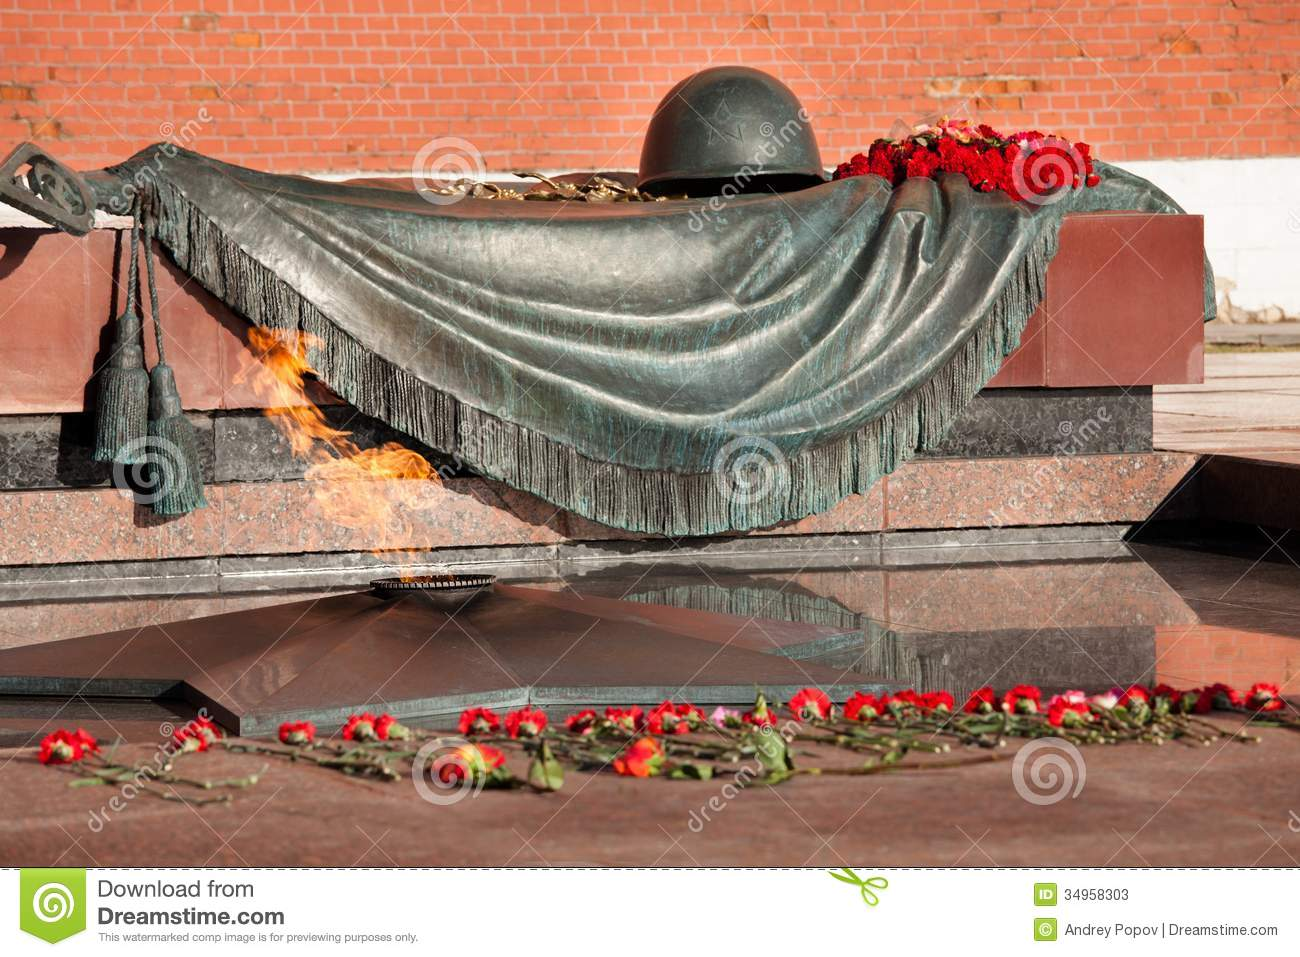 Tomb of the Unknown Soldier Moscow, Tomb Of The Unknown Soldier In Moscow Stock Image - Image: 34958303